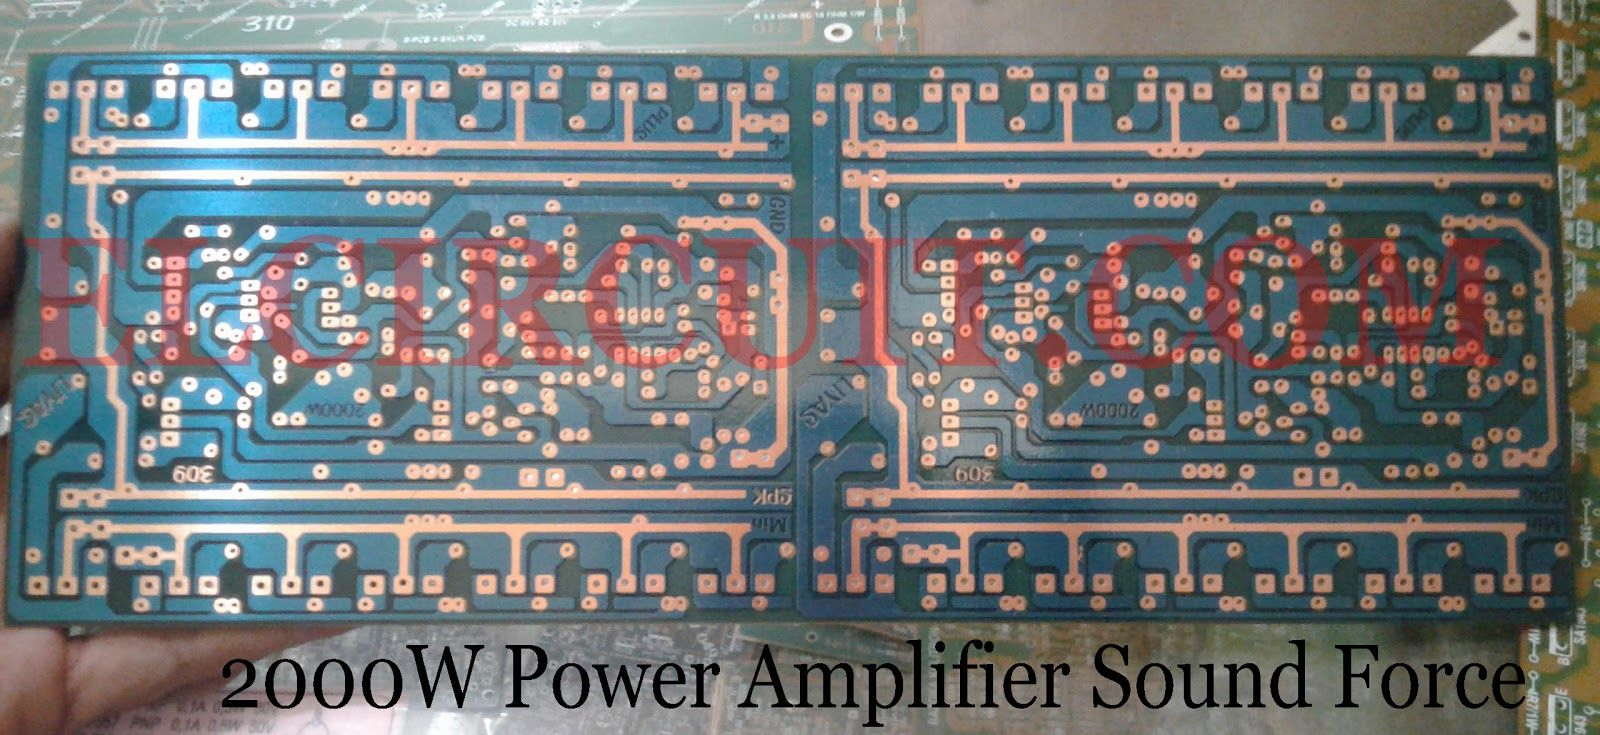 2000W Power Amplifier Circuit Complete PCB Layout in 2019 ... on